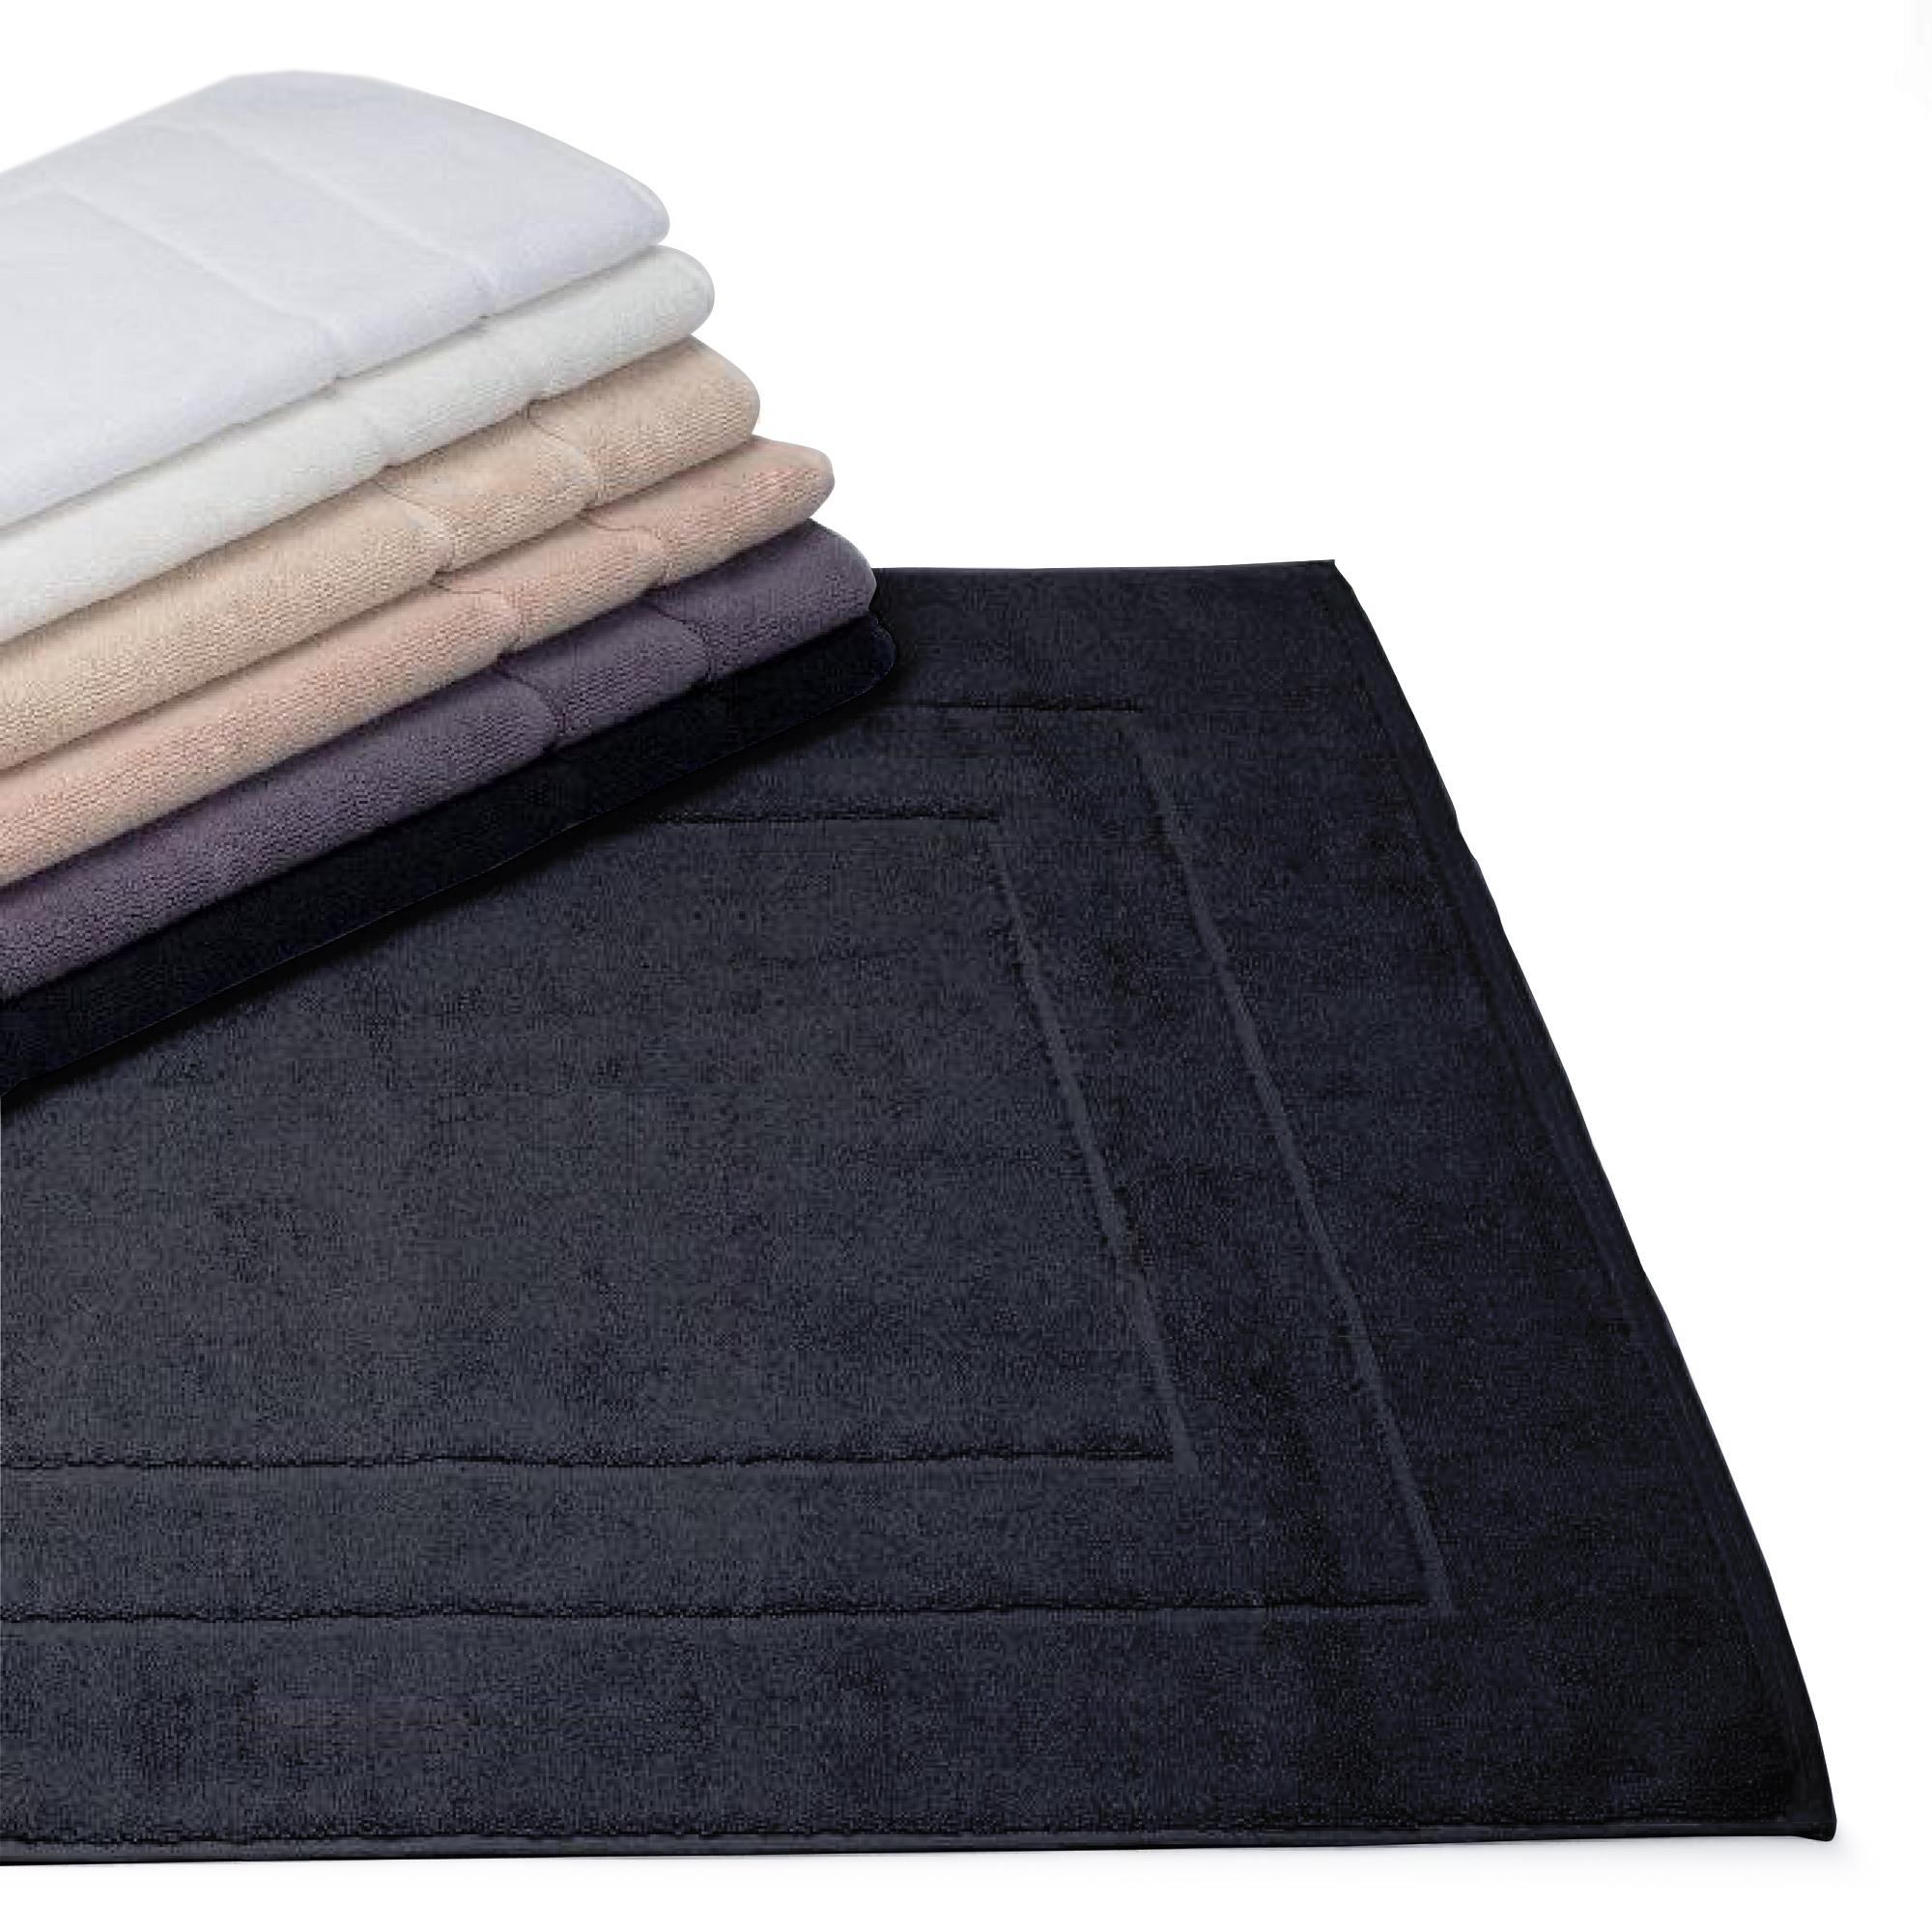 tapis de bain 60x100cm uni coton flair anthracite linnea vente de linge de maison. Black Bedroom Furniture Sets. Home Design Ideas